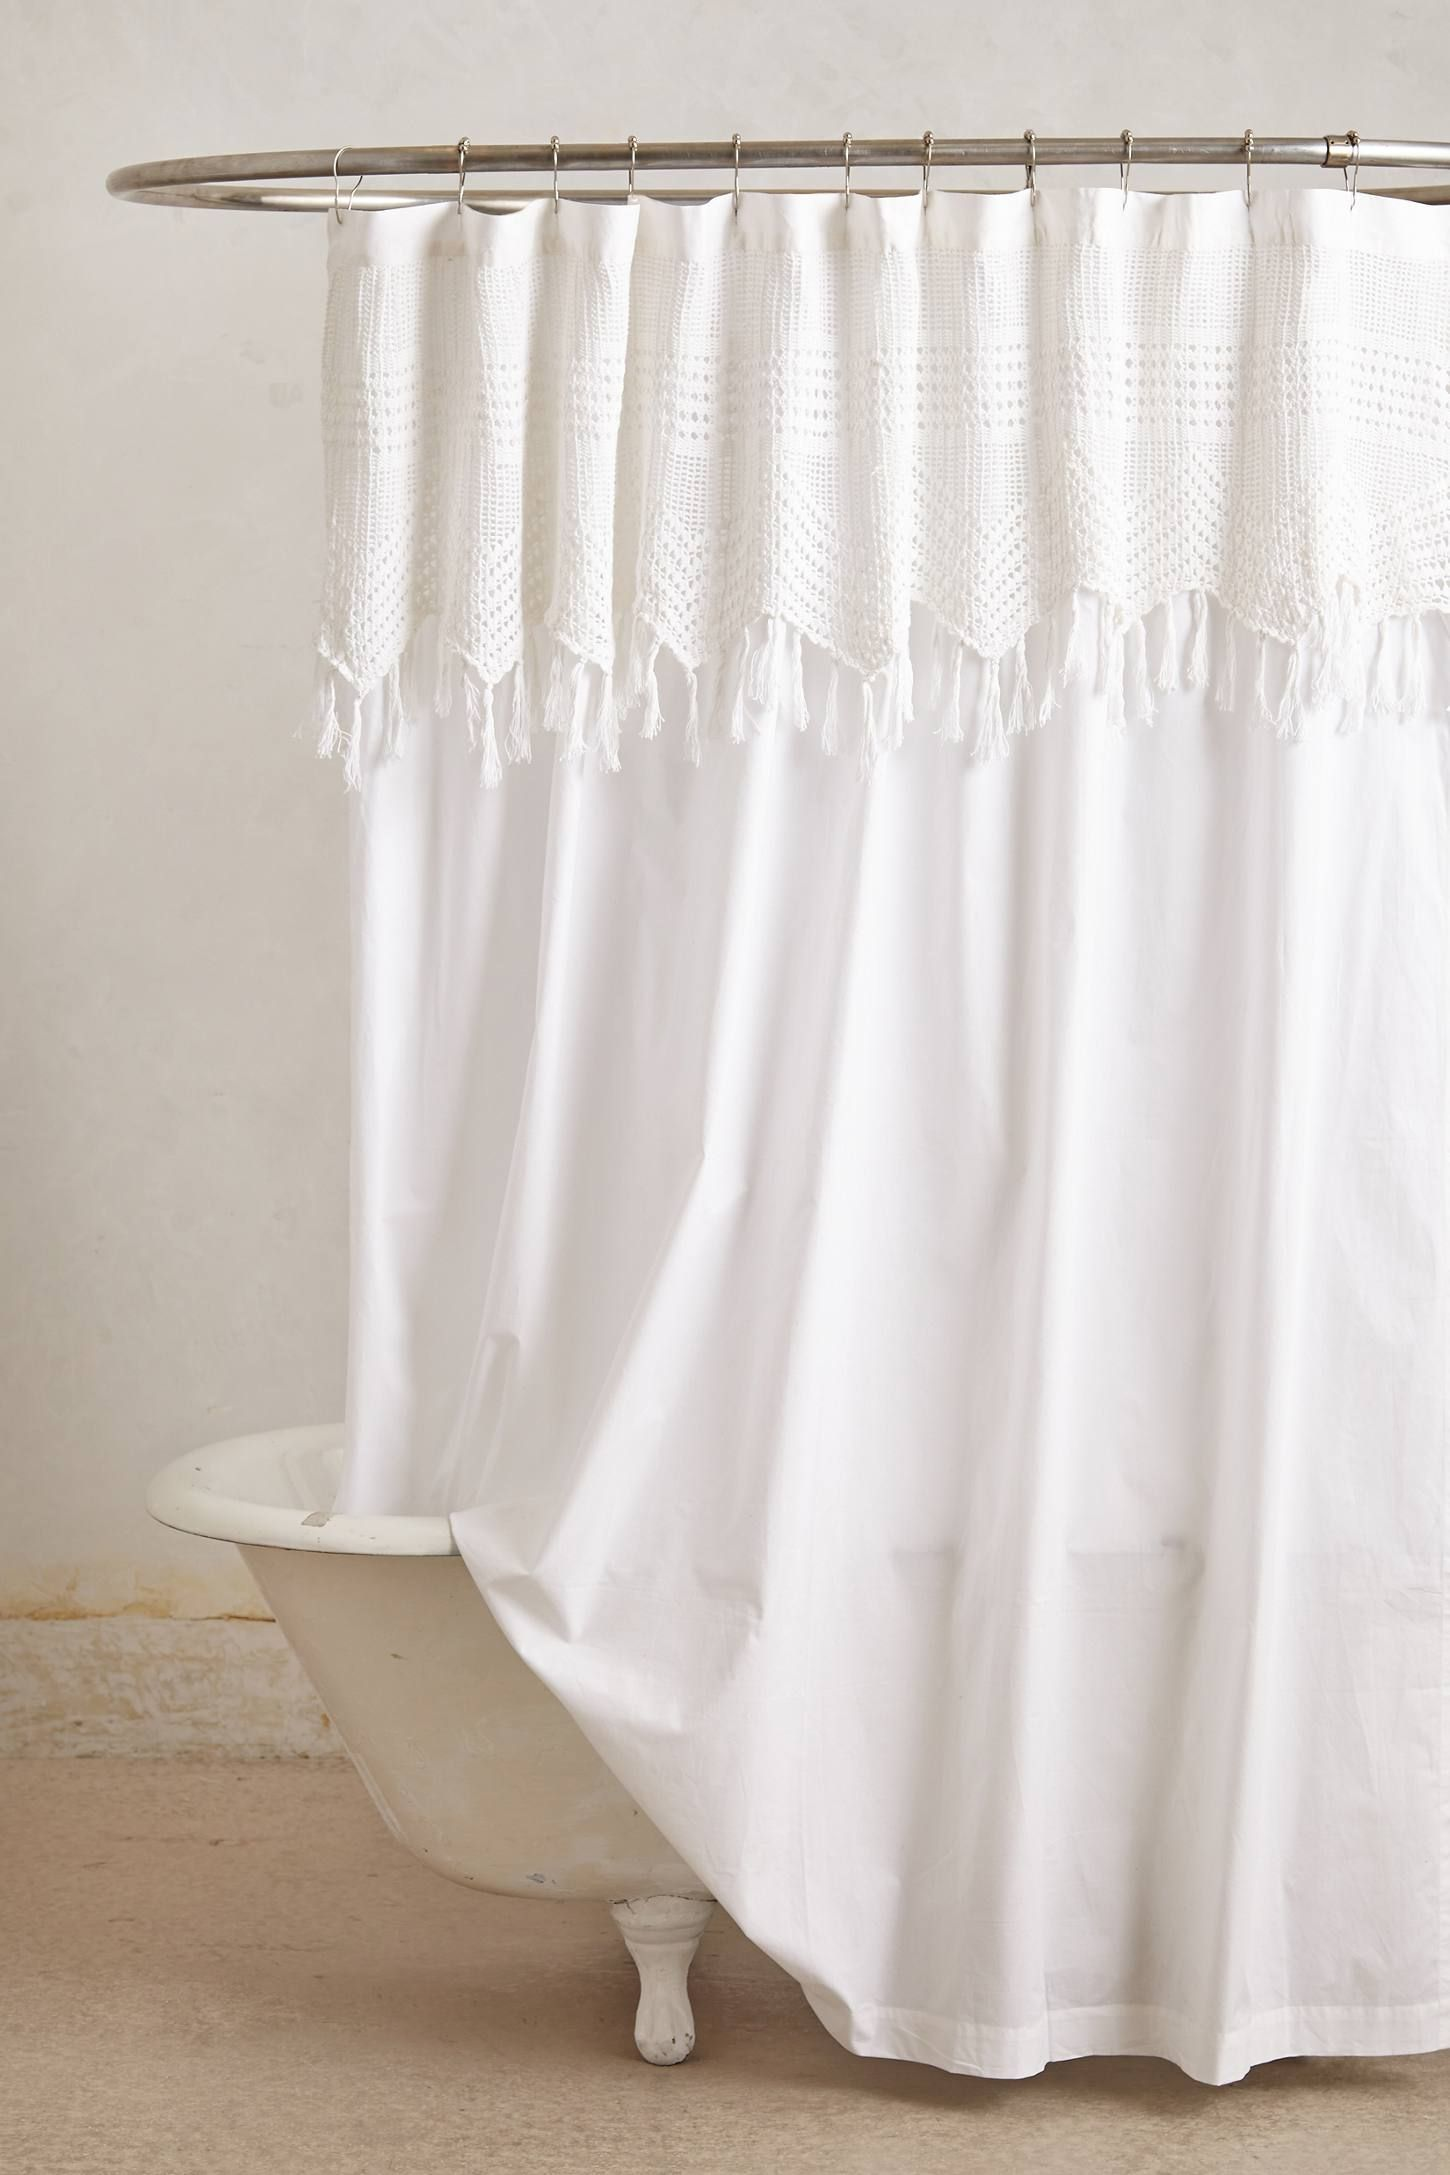 curtain brown ruffle awesome etsy ombre curtains of inspirational vintage shower